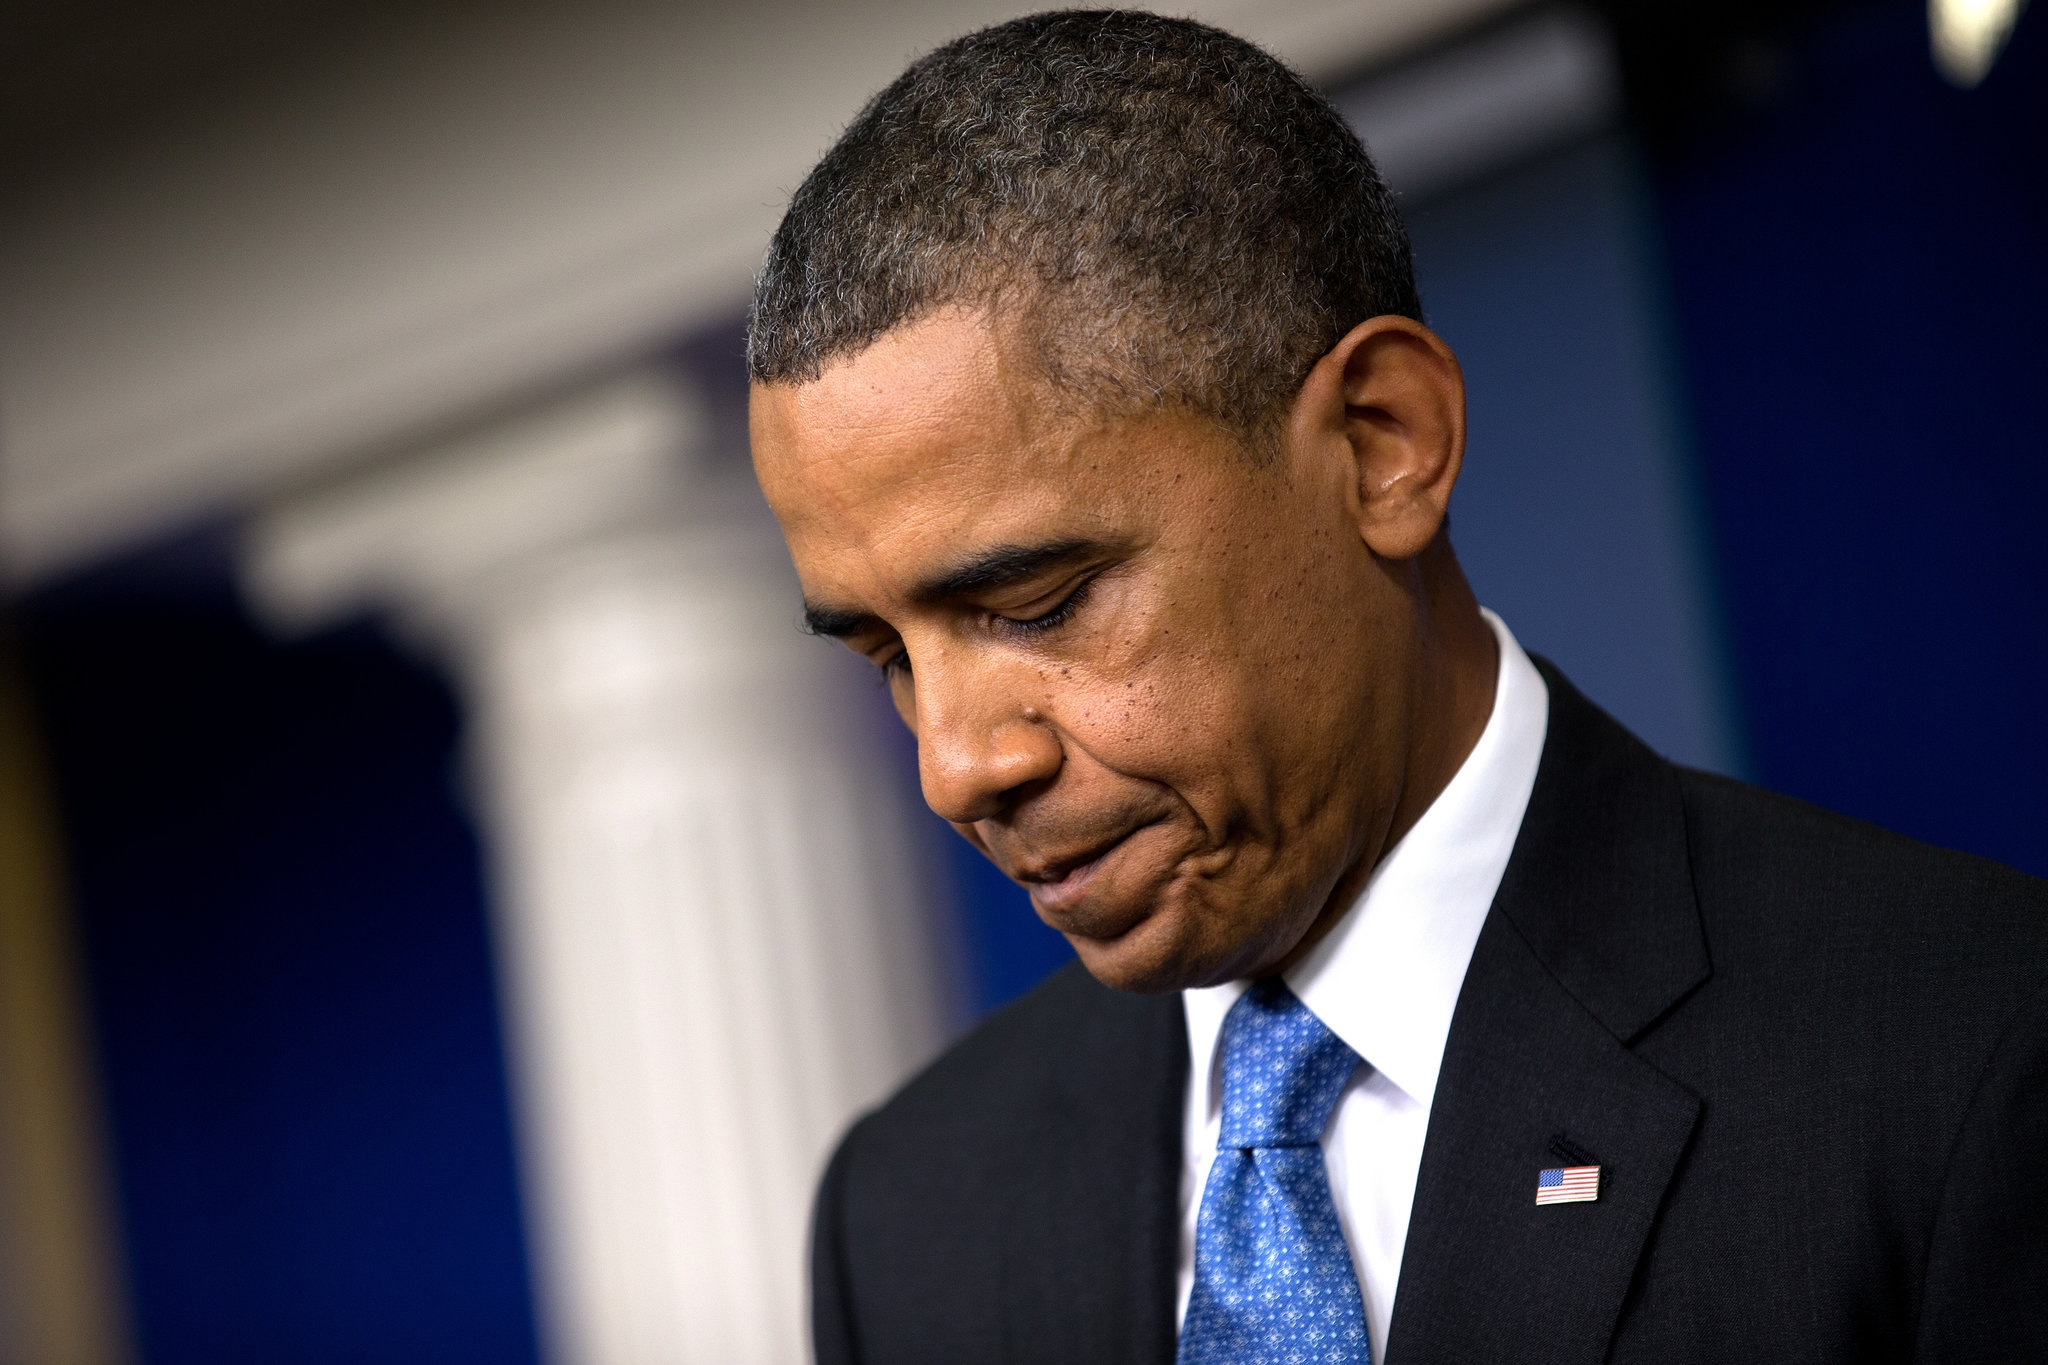 Barack Obama ya no goza de la credibilidad de los estadounidenses. Foto:graphics8.nytimes.com